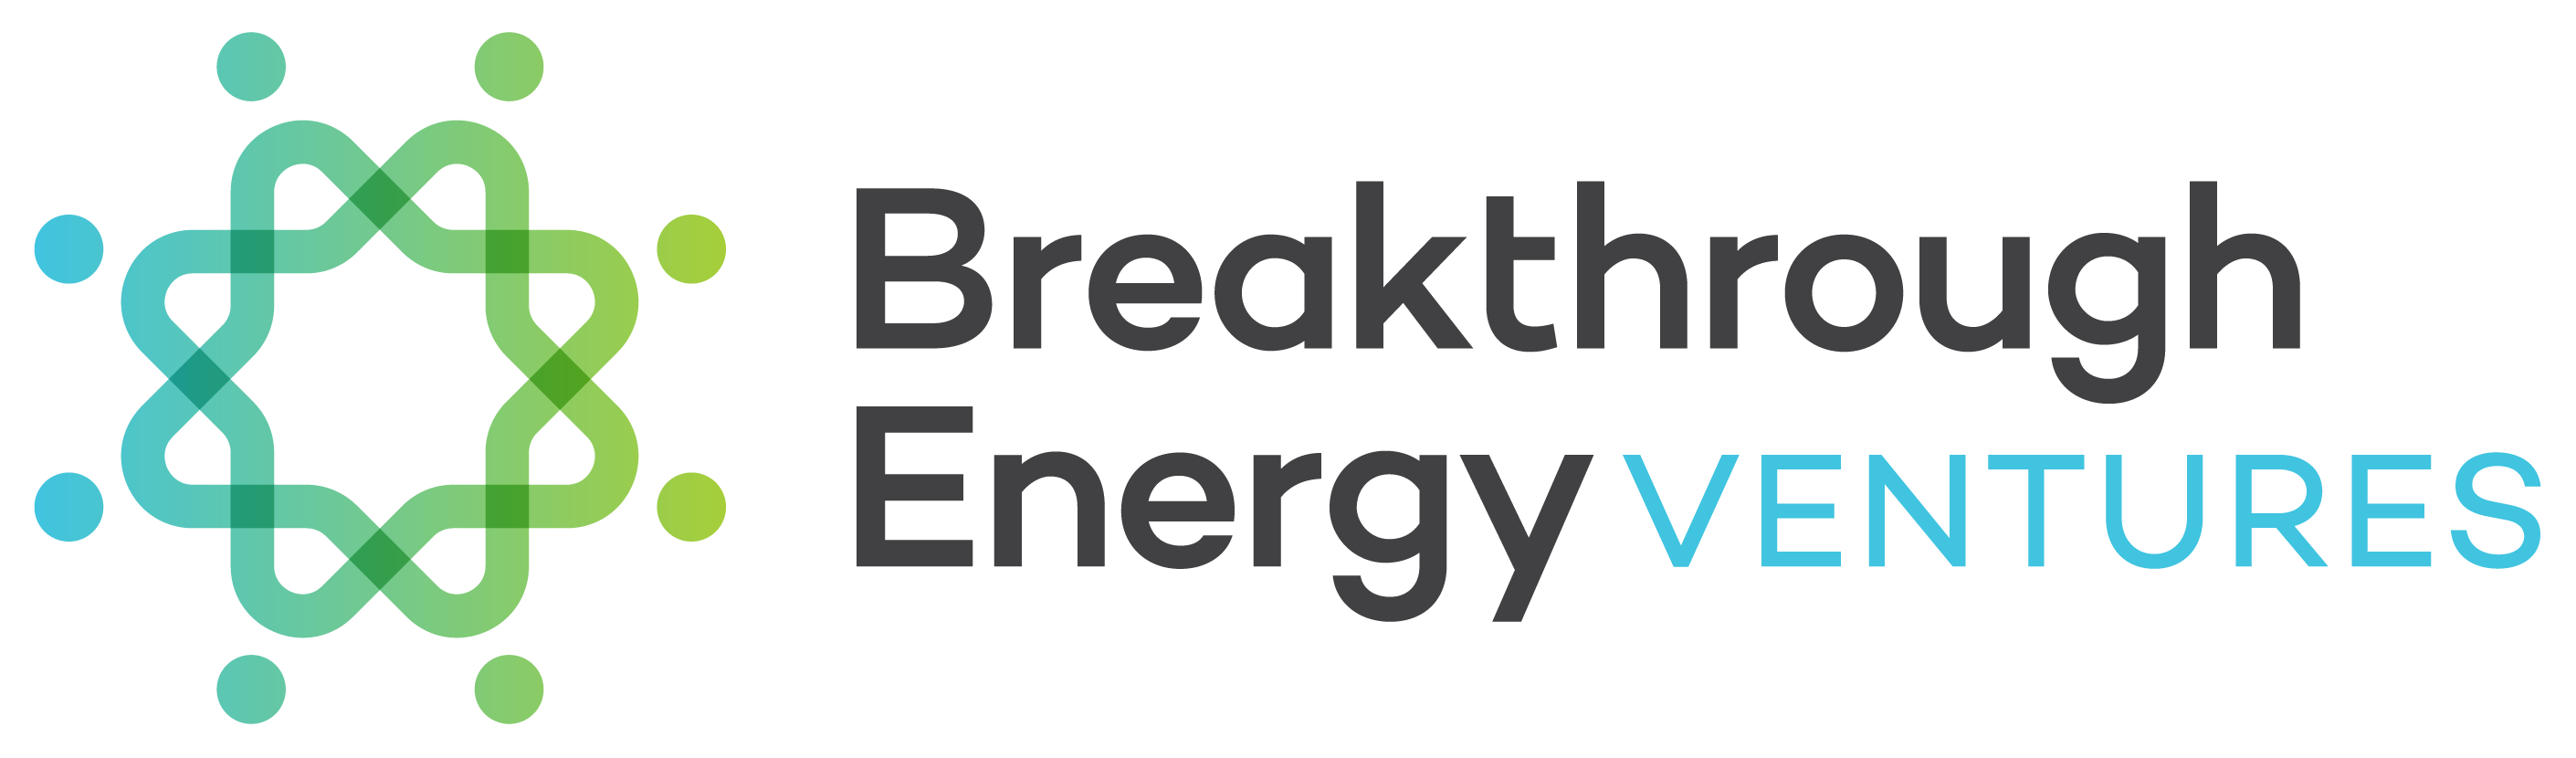 Breakthrough Energy Ventures